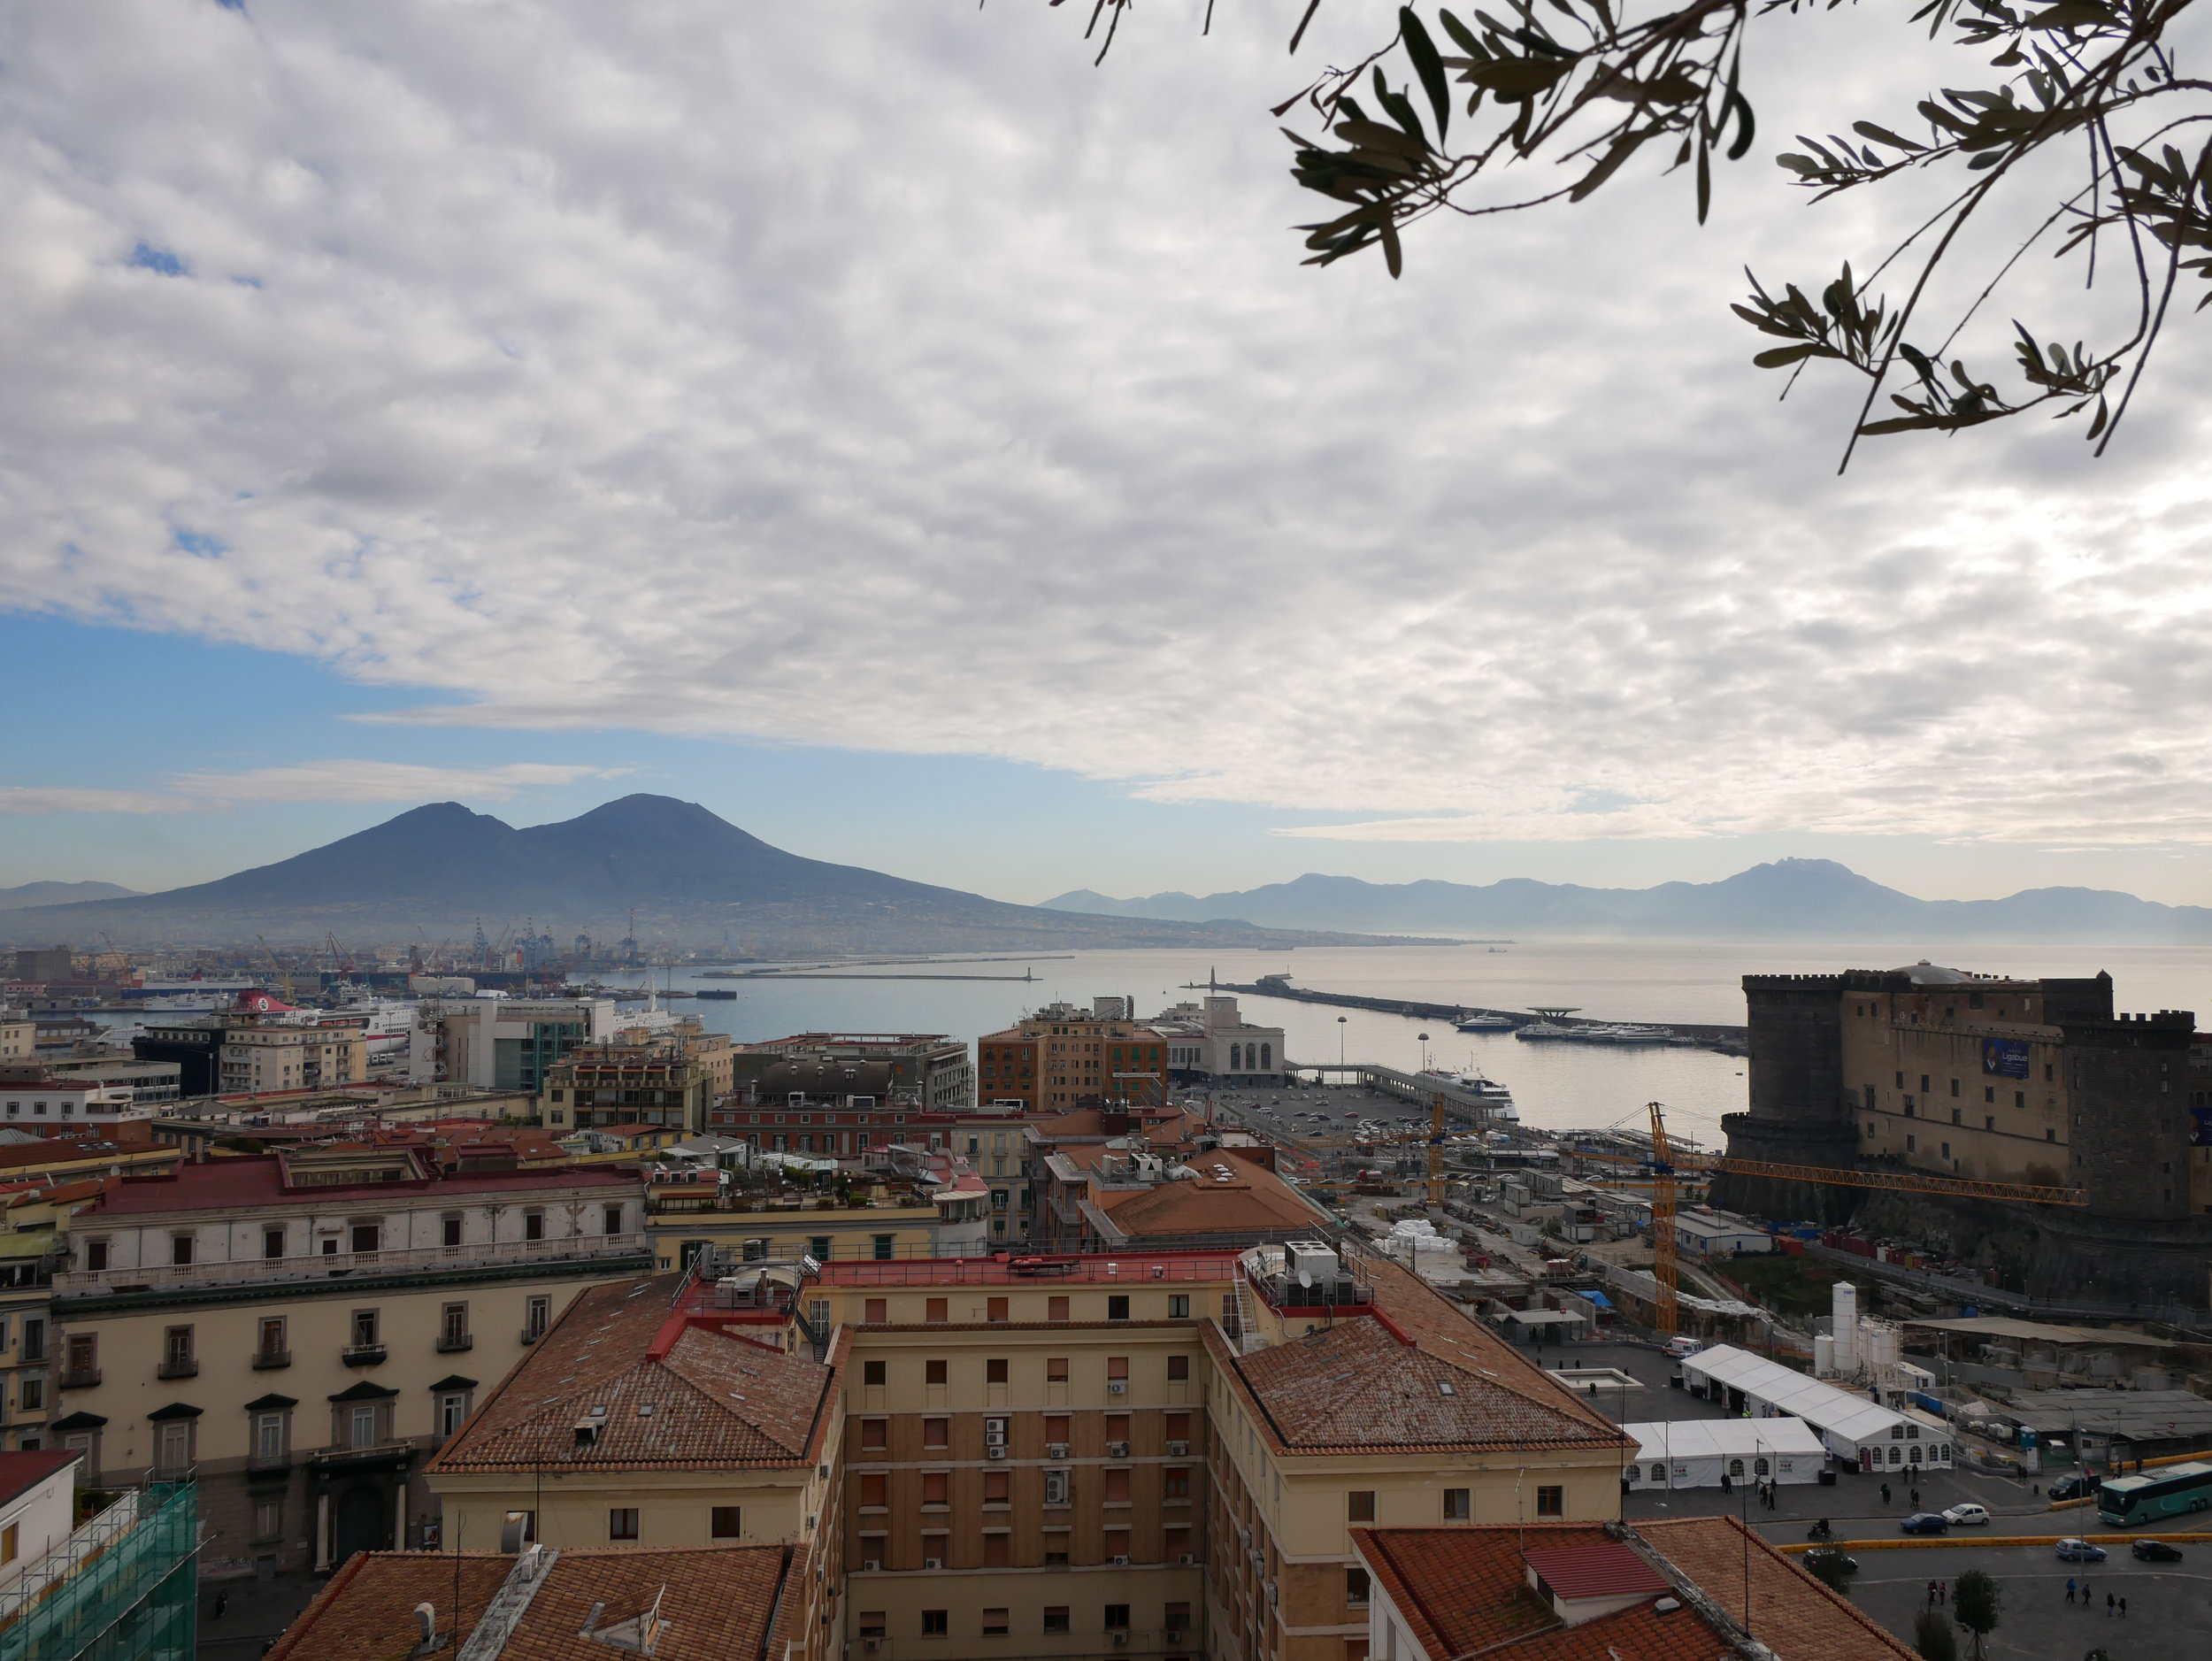 Renaissance Naples view of Vesuvius